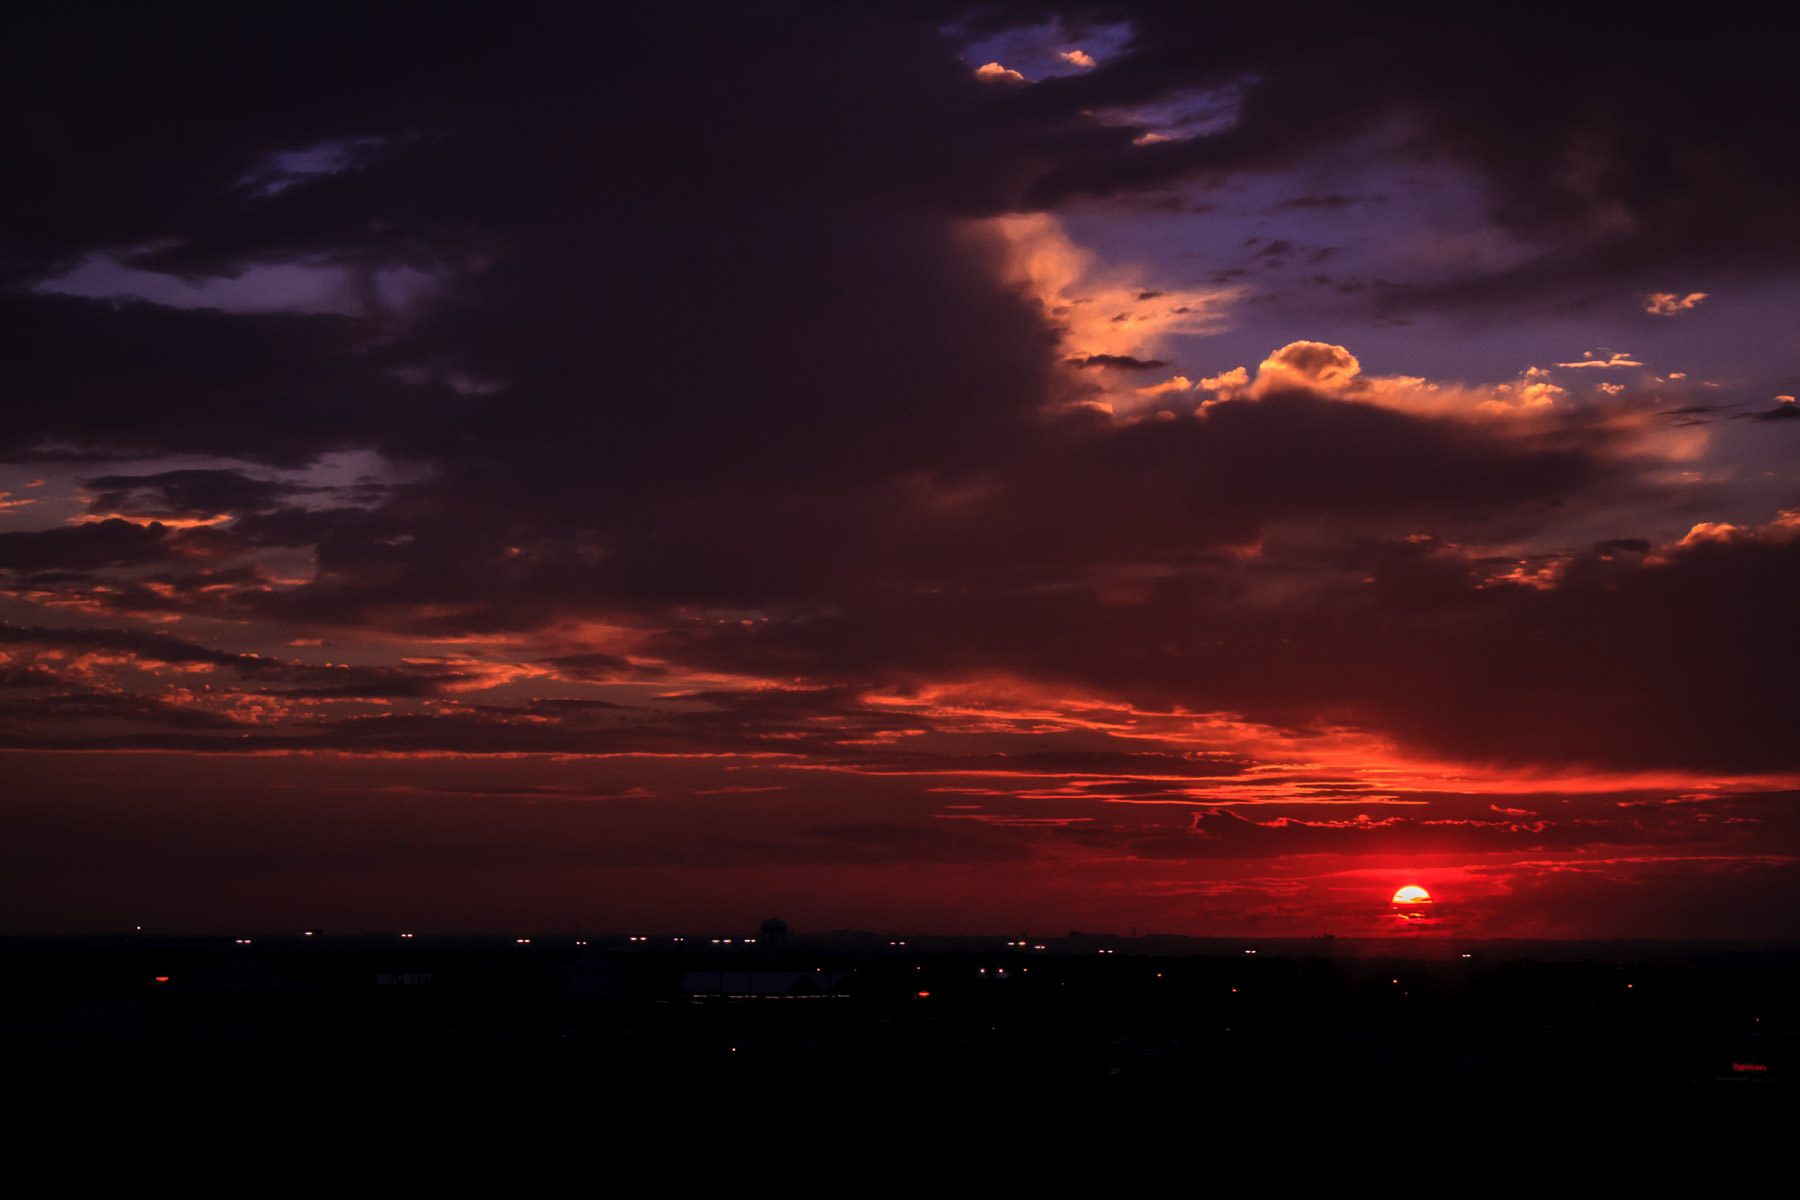 The sun setting over the western part of the Dallas-Fort Worth Metroplex.